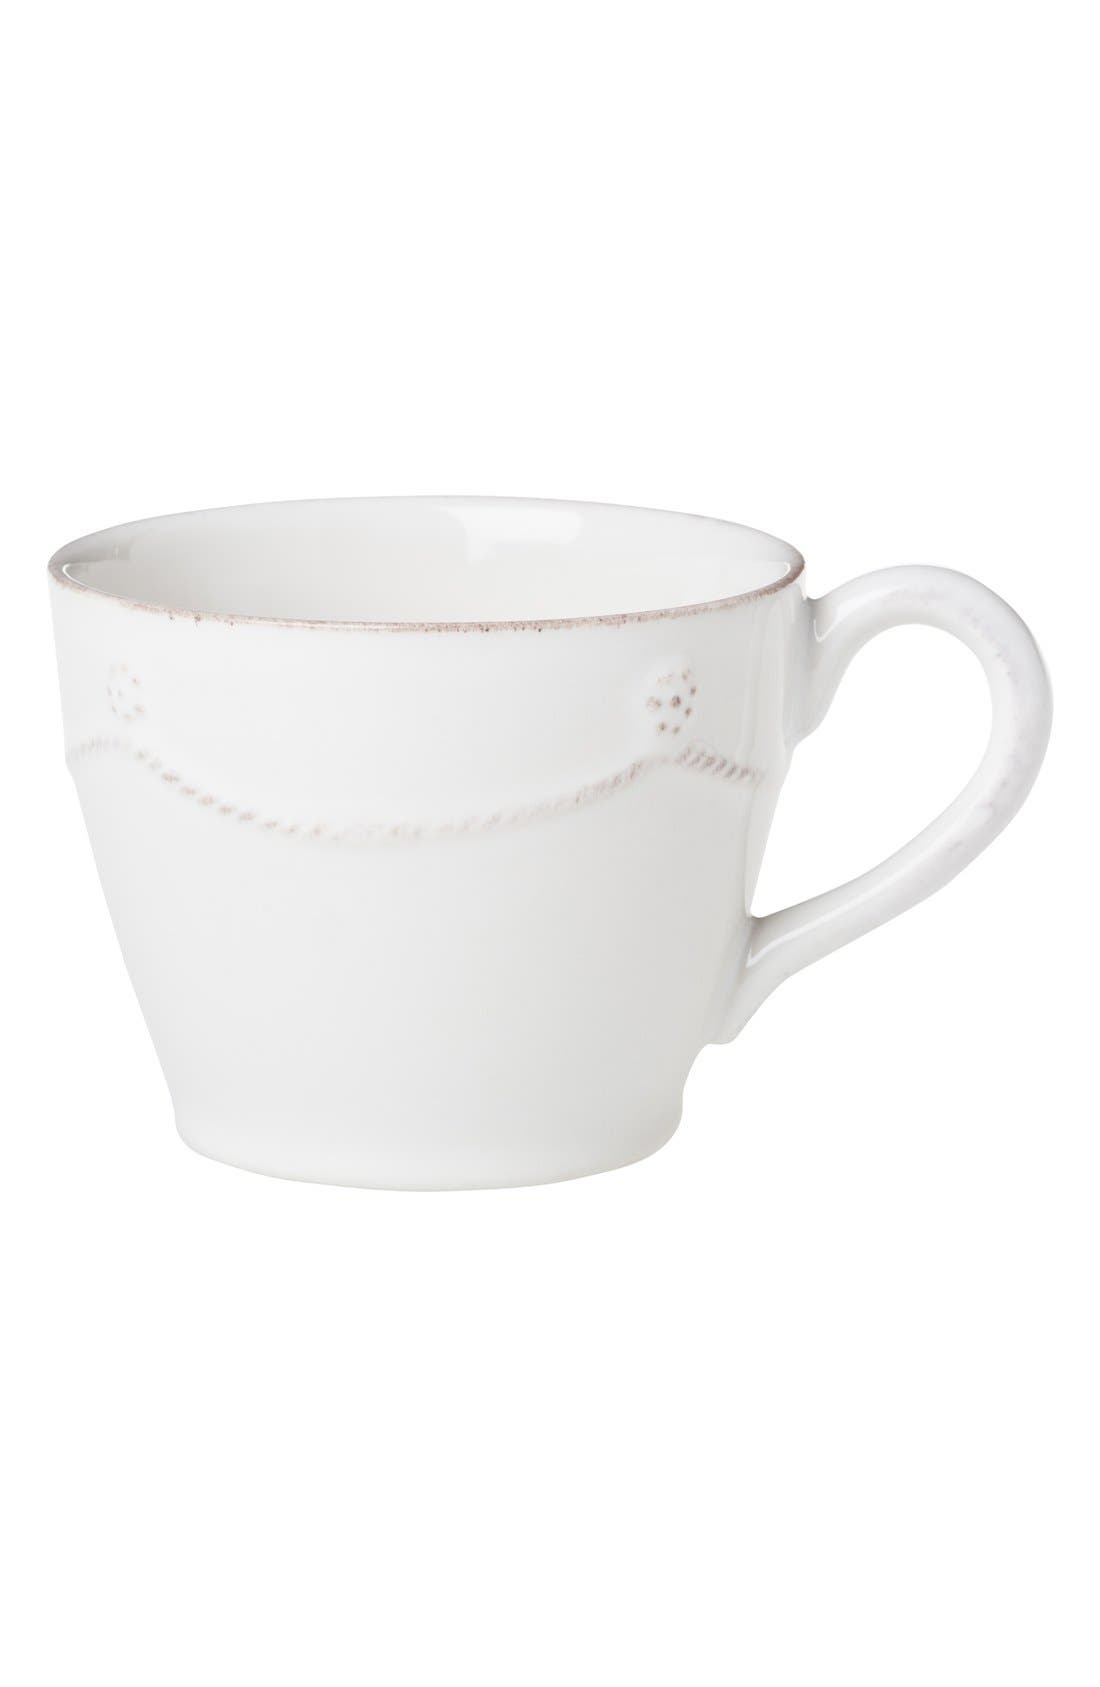 Juliska 'Berry and Thread' Tea & Coffee Cup